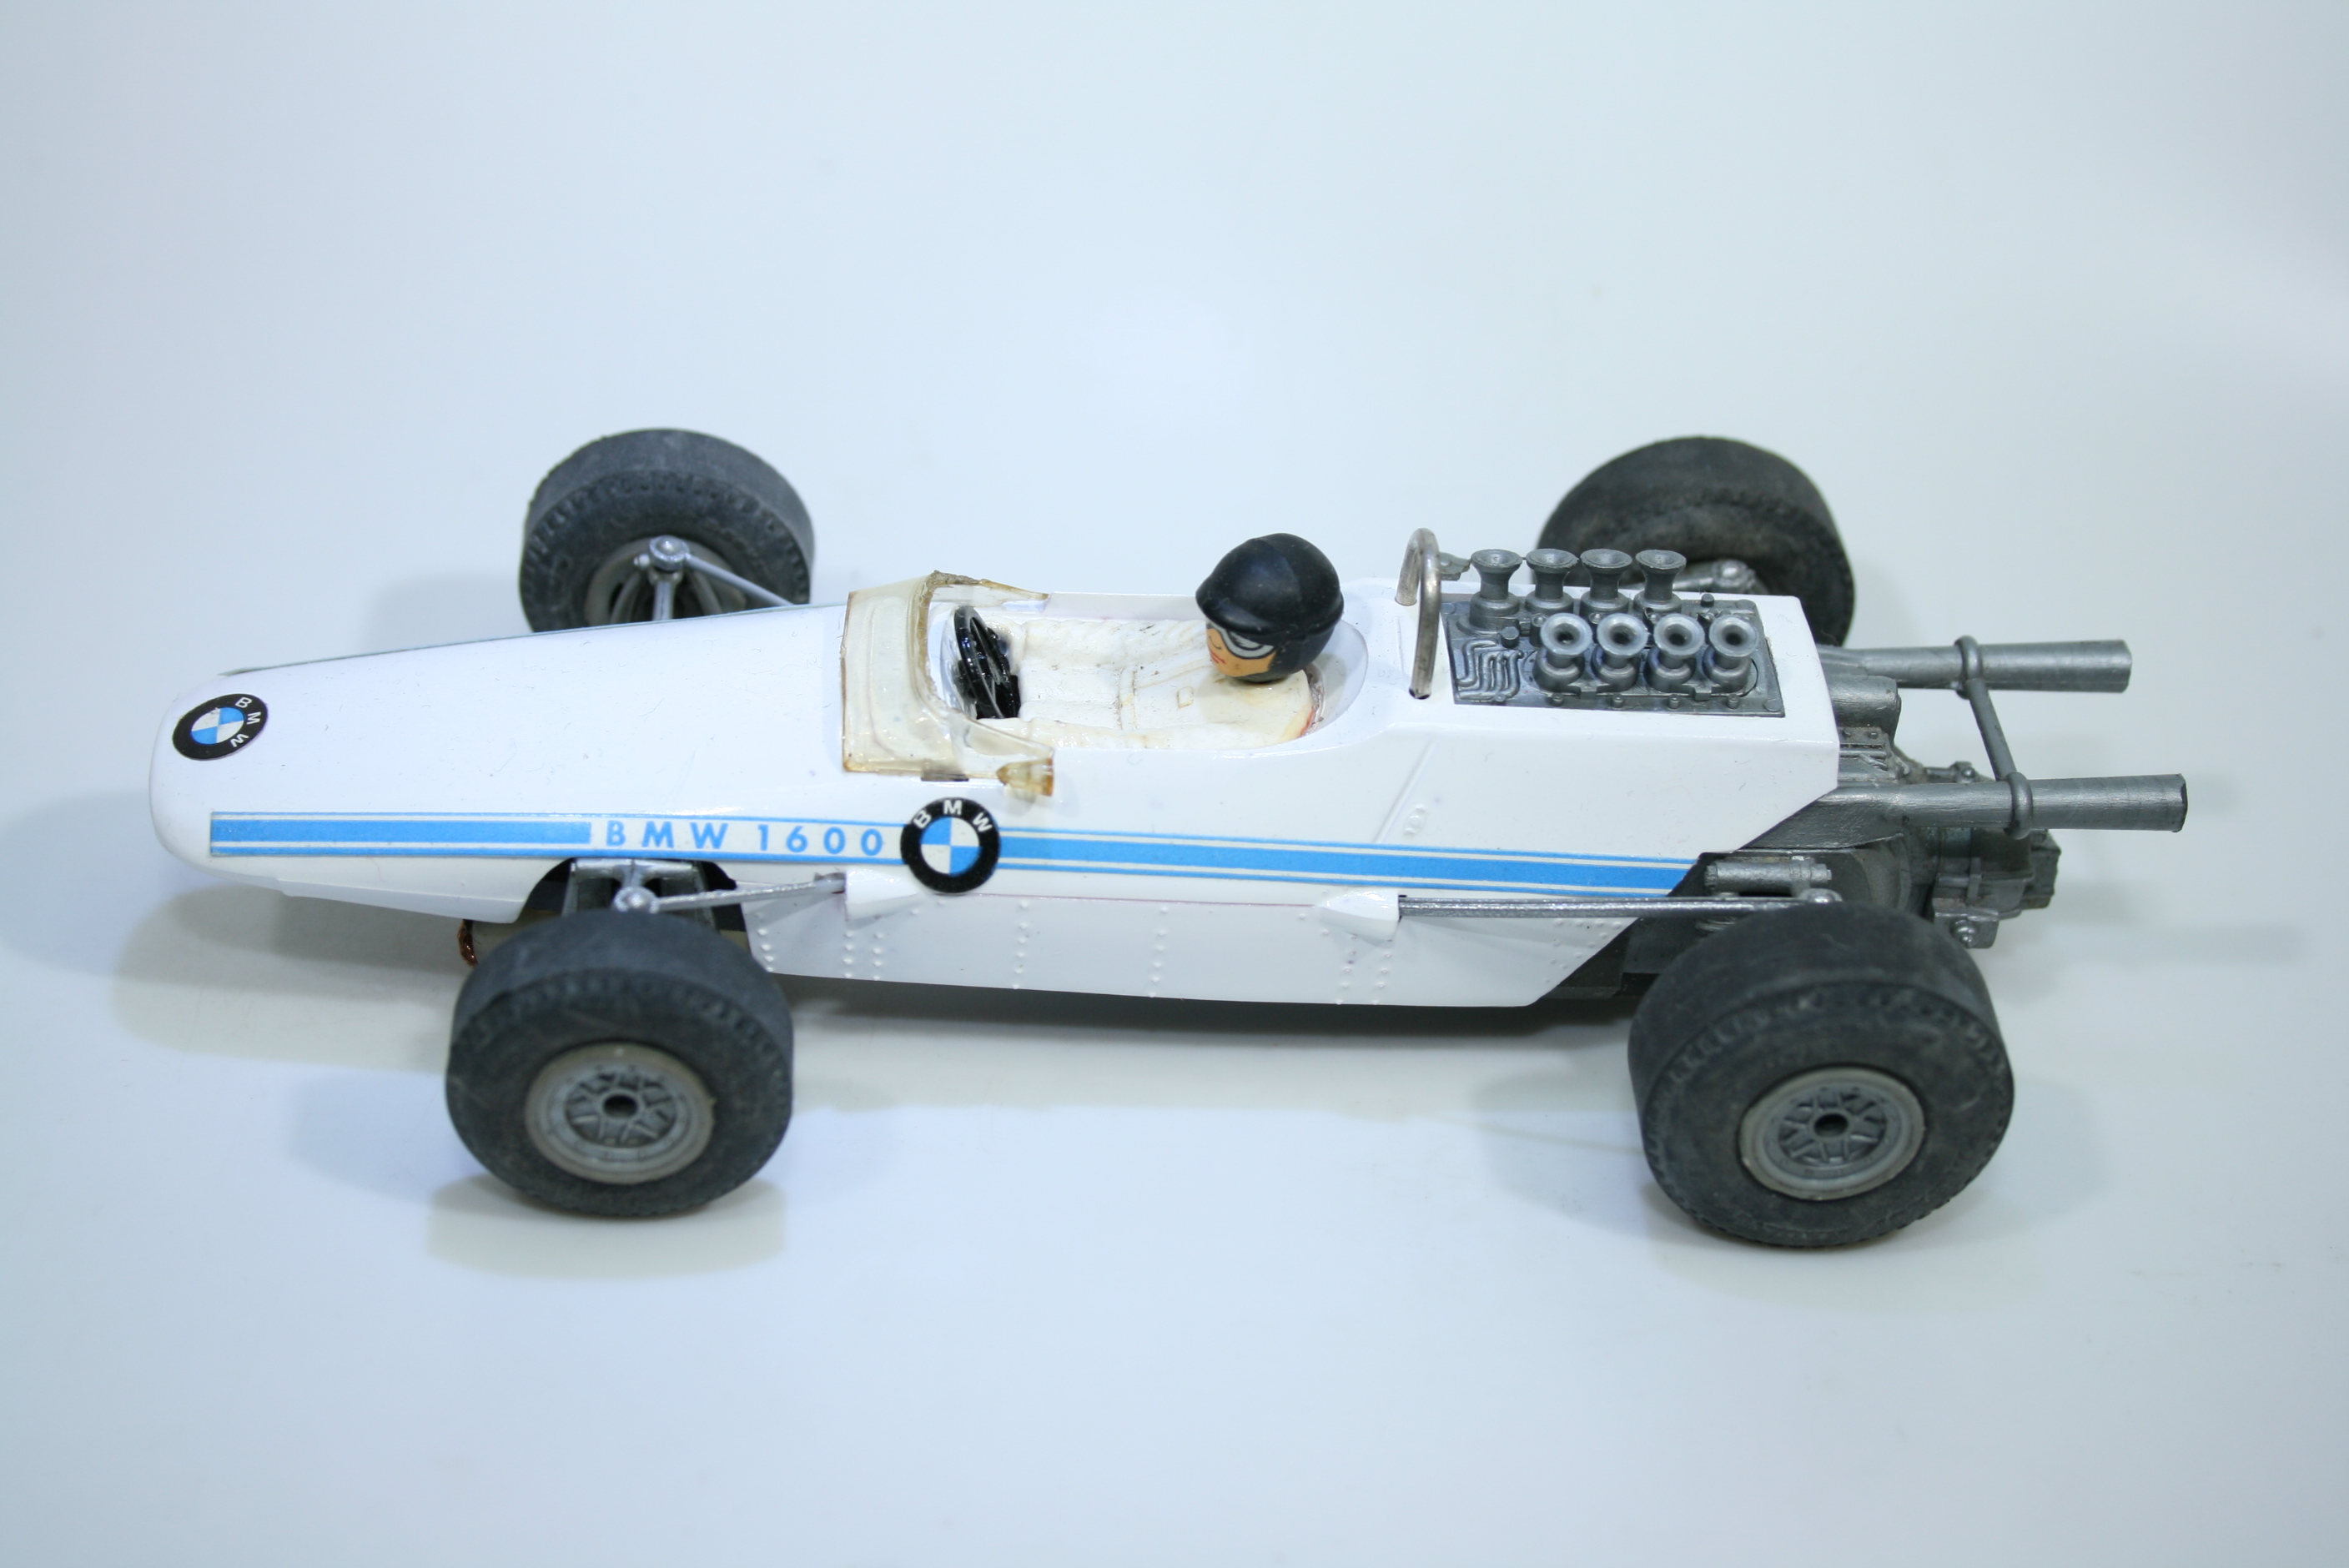 1556 Lola BMW T100 1967 H Hahne Stabo